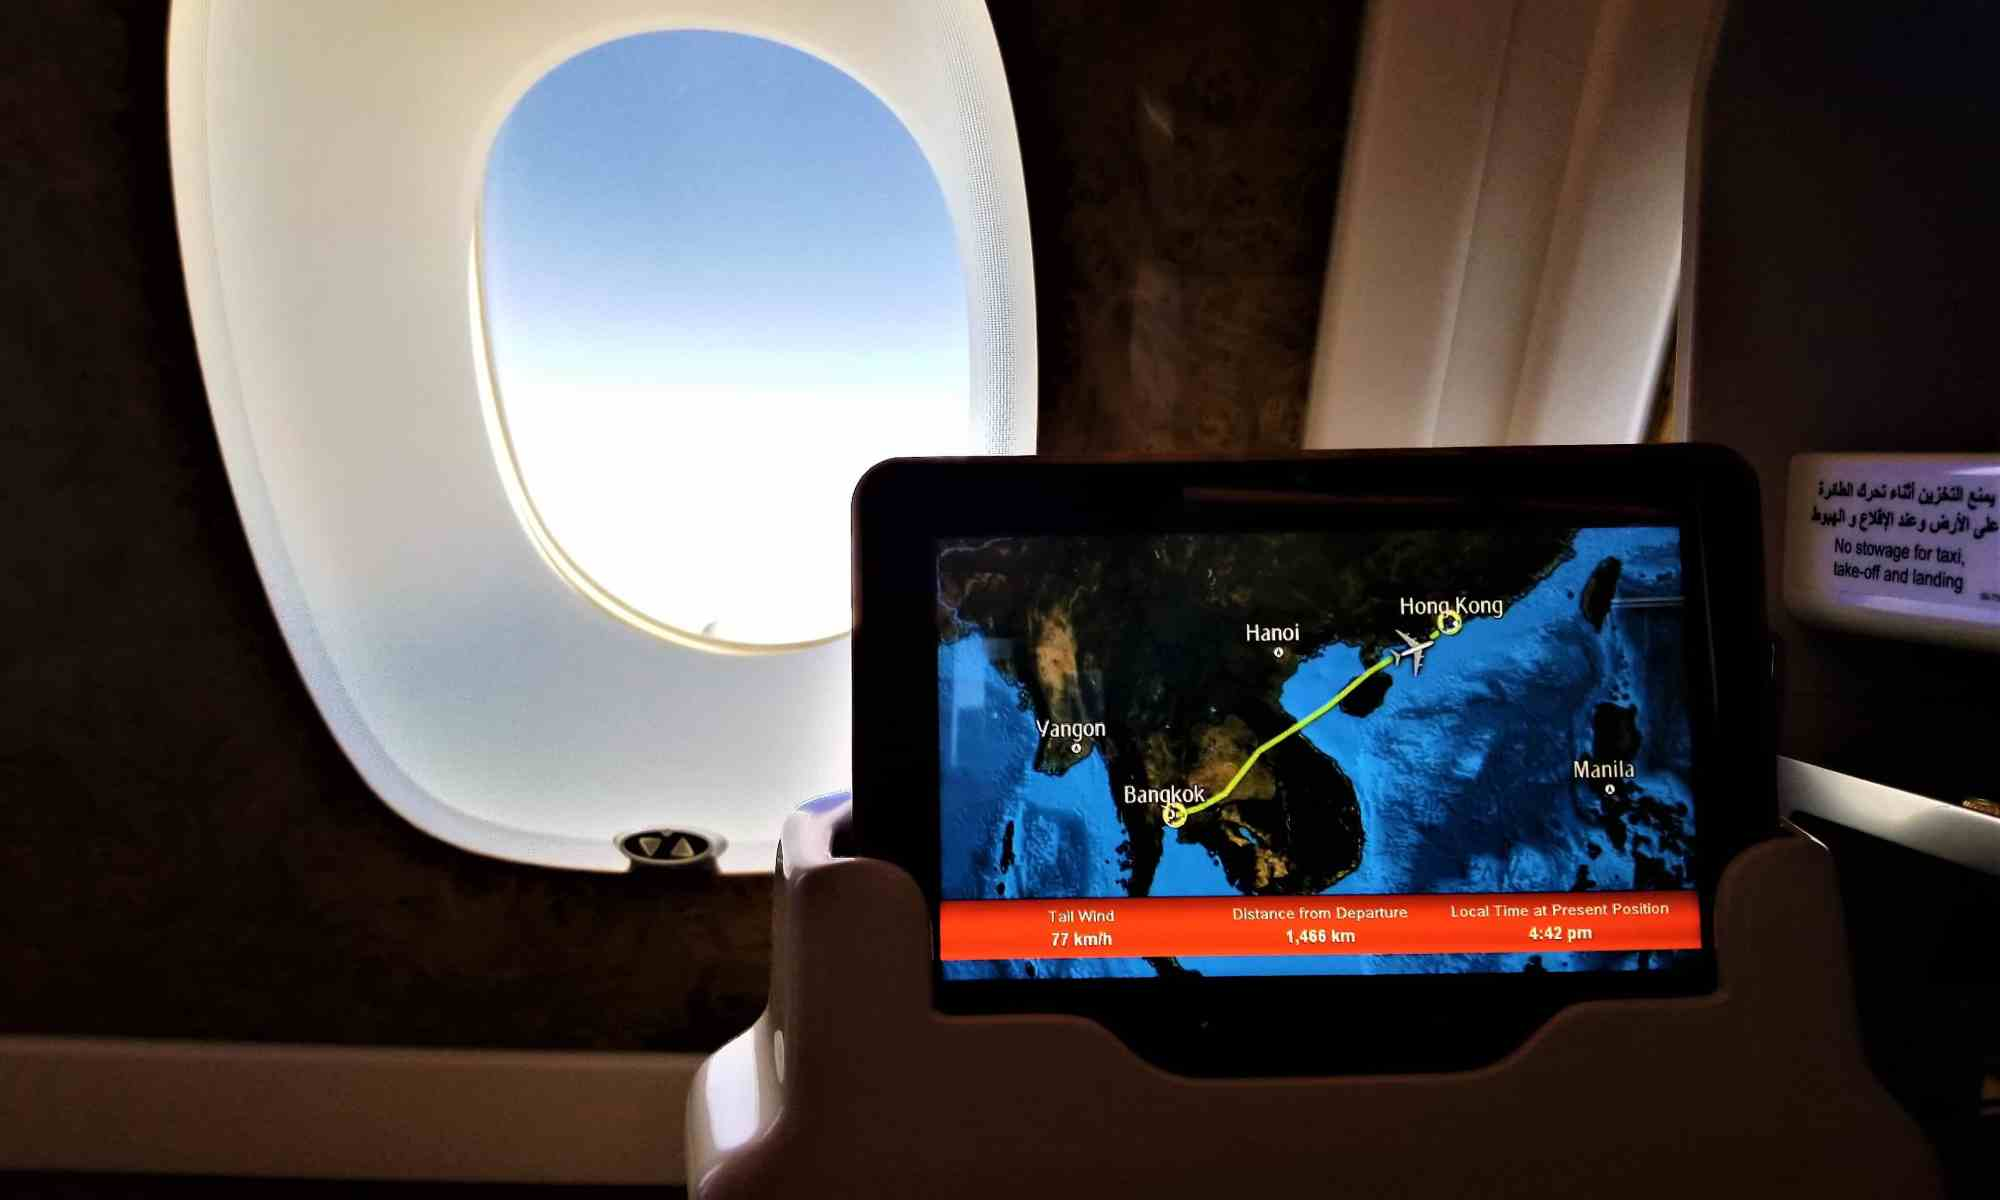 image-of-electronic-flight-map-emirates-airline